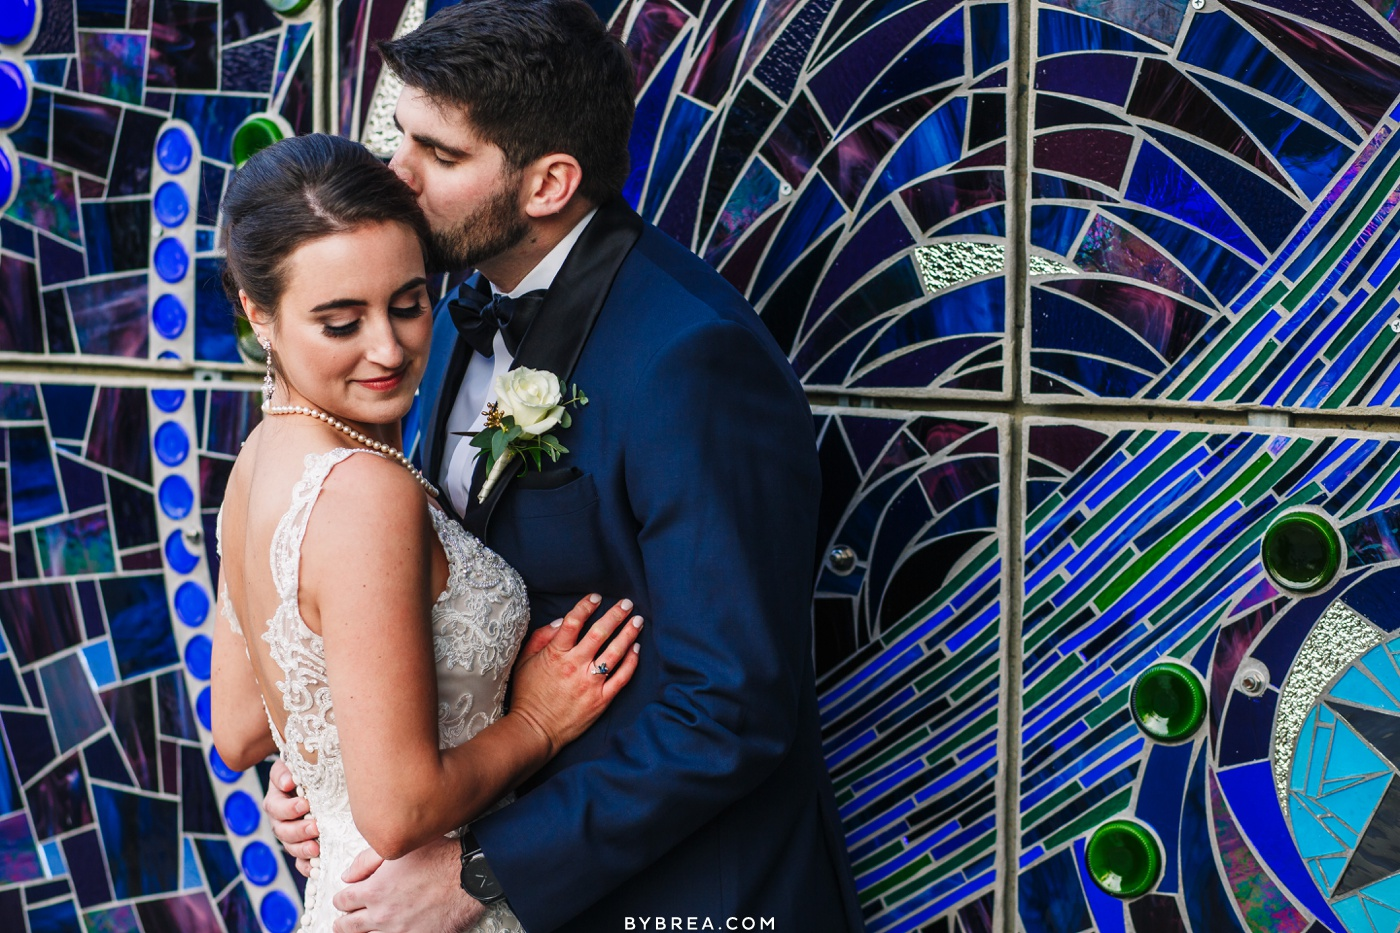 American Visionary Art museum couples portrait Baltimore wedding